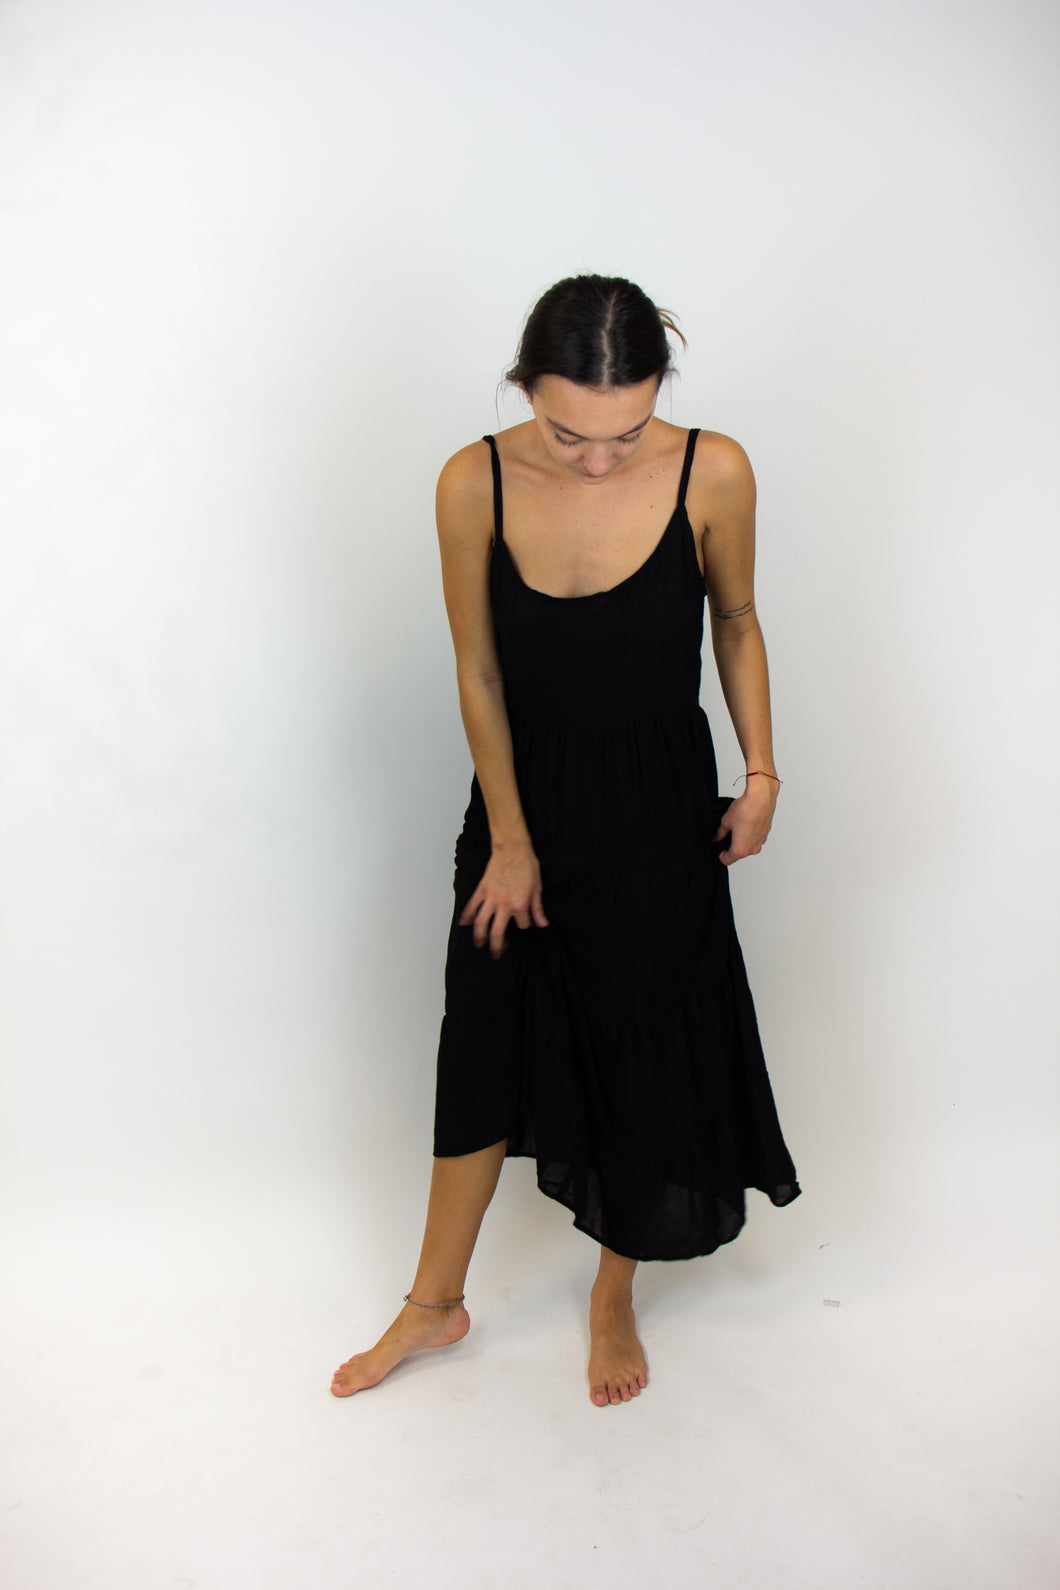 This photo shows a long and lightweight dress that is black and spaghetti strapped. The model is twirling it to show how it moves.